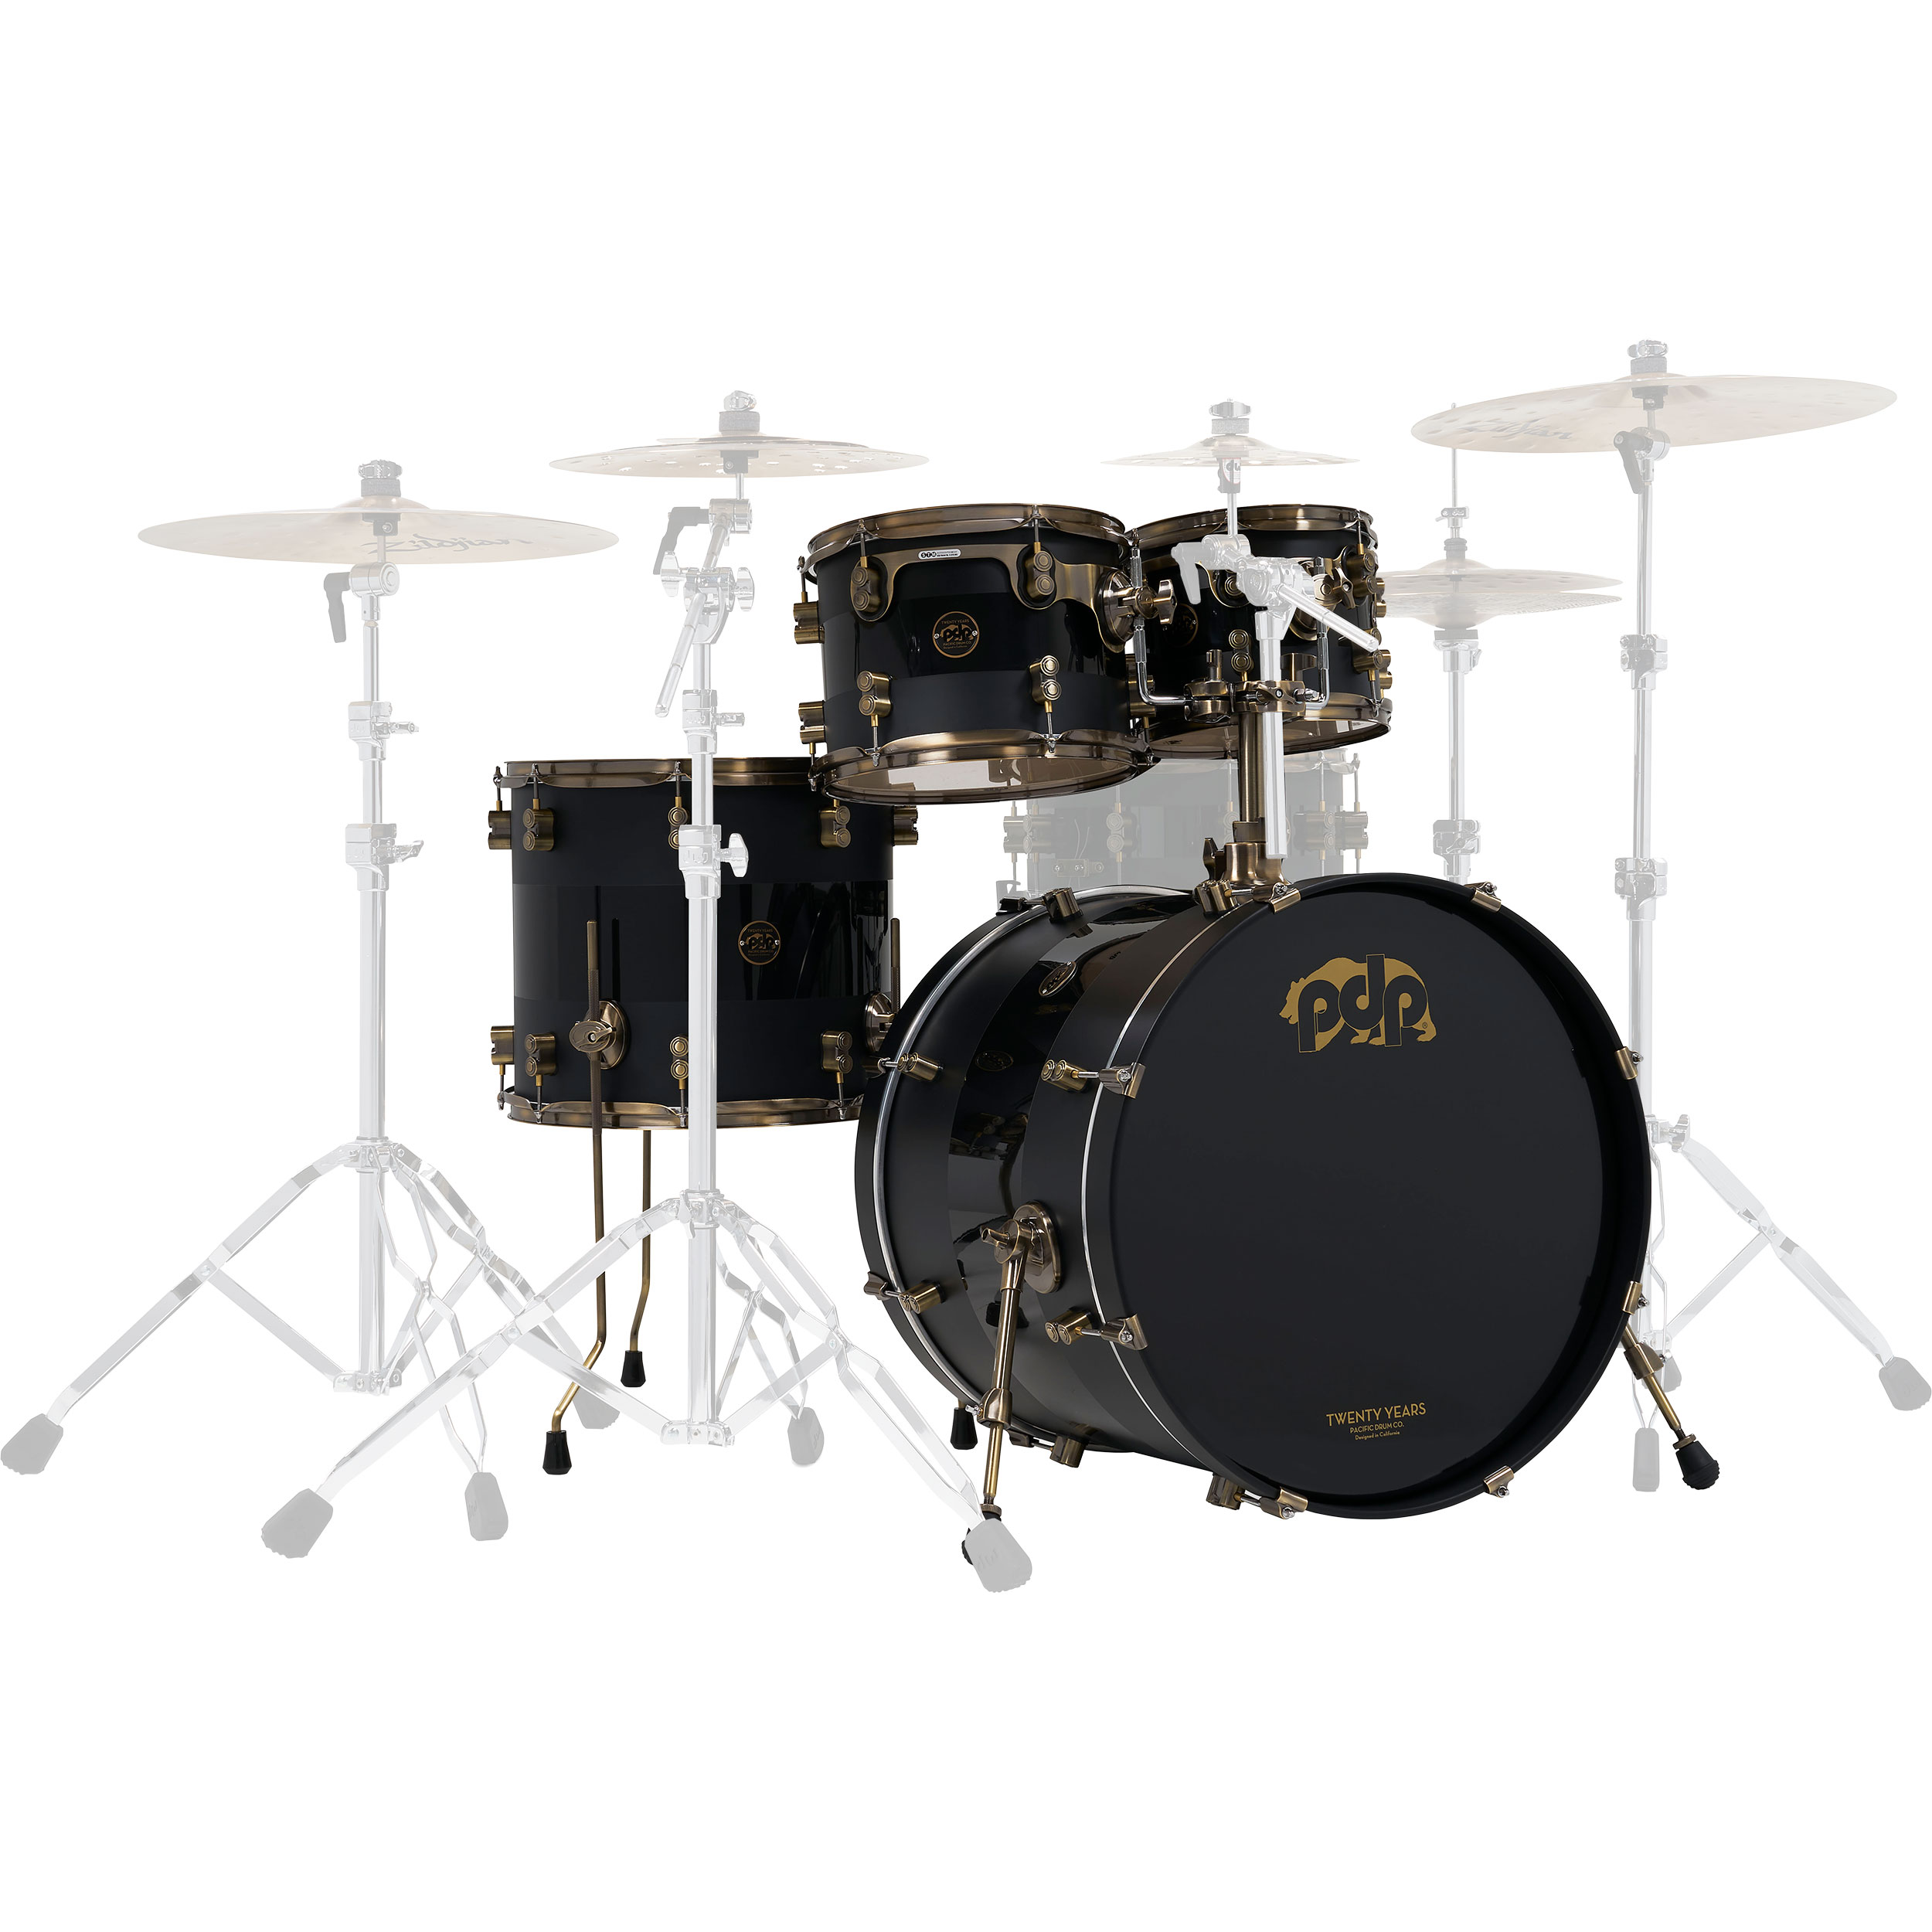 "PDP Limited Edition 20th Anniversary 4-Piece Drum Set Shell Pack (22"" Bass, 10/12/16"" Toms)"